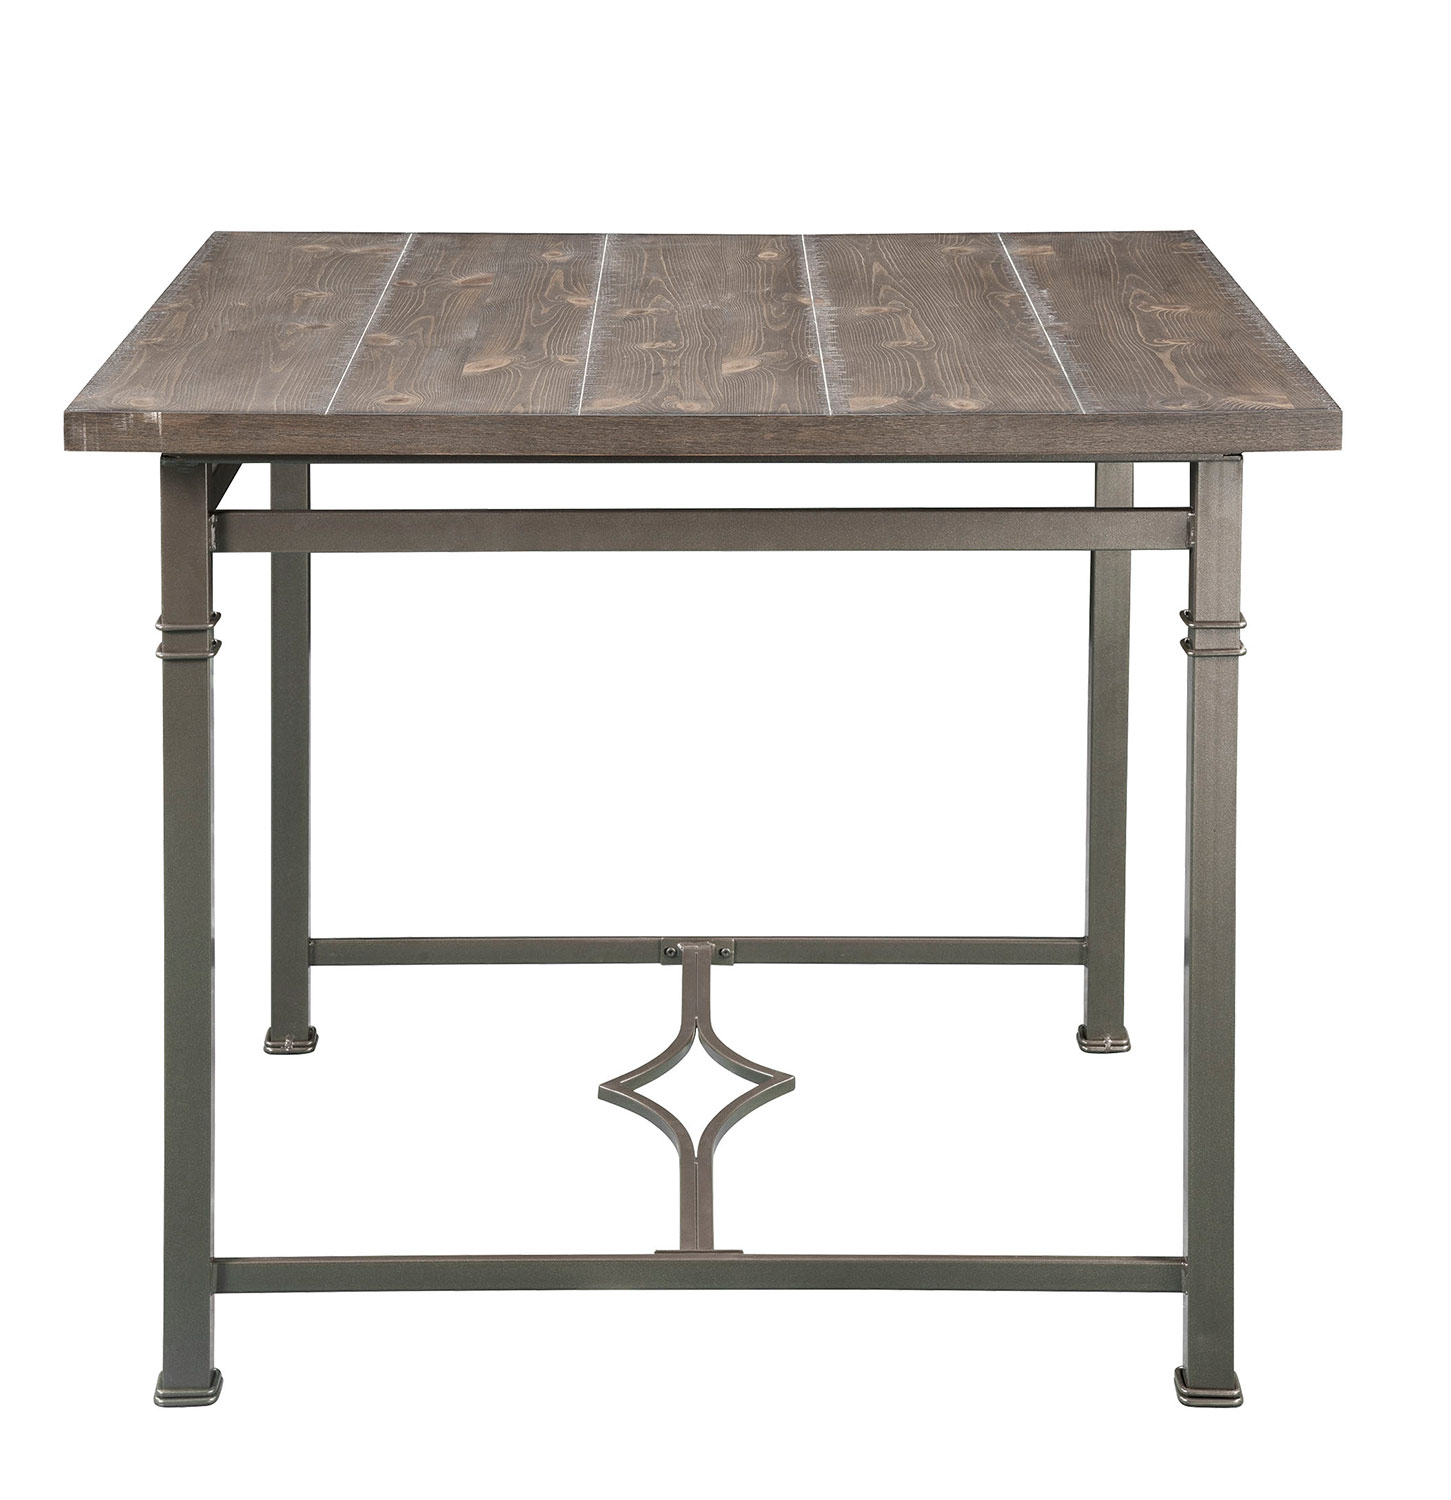 Acme LynLee Counter Height Table - Weathered Dark Oak/Dark Bronze